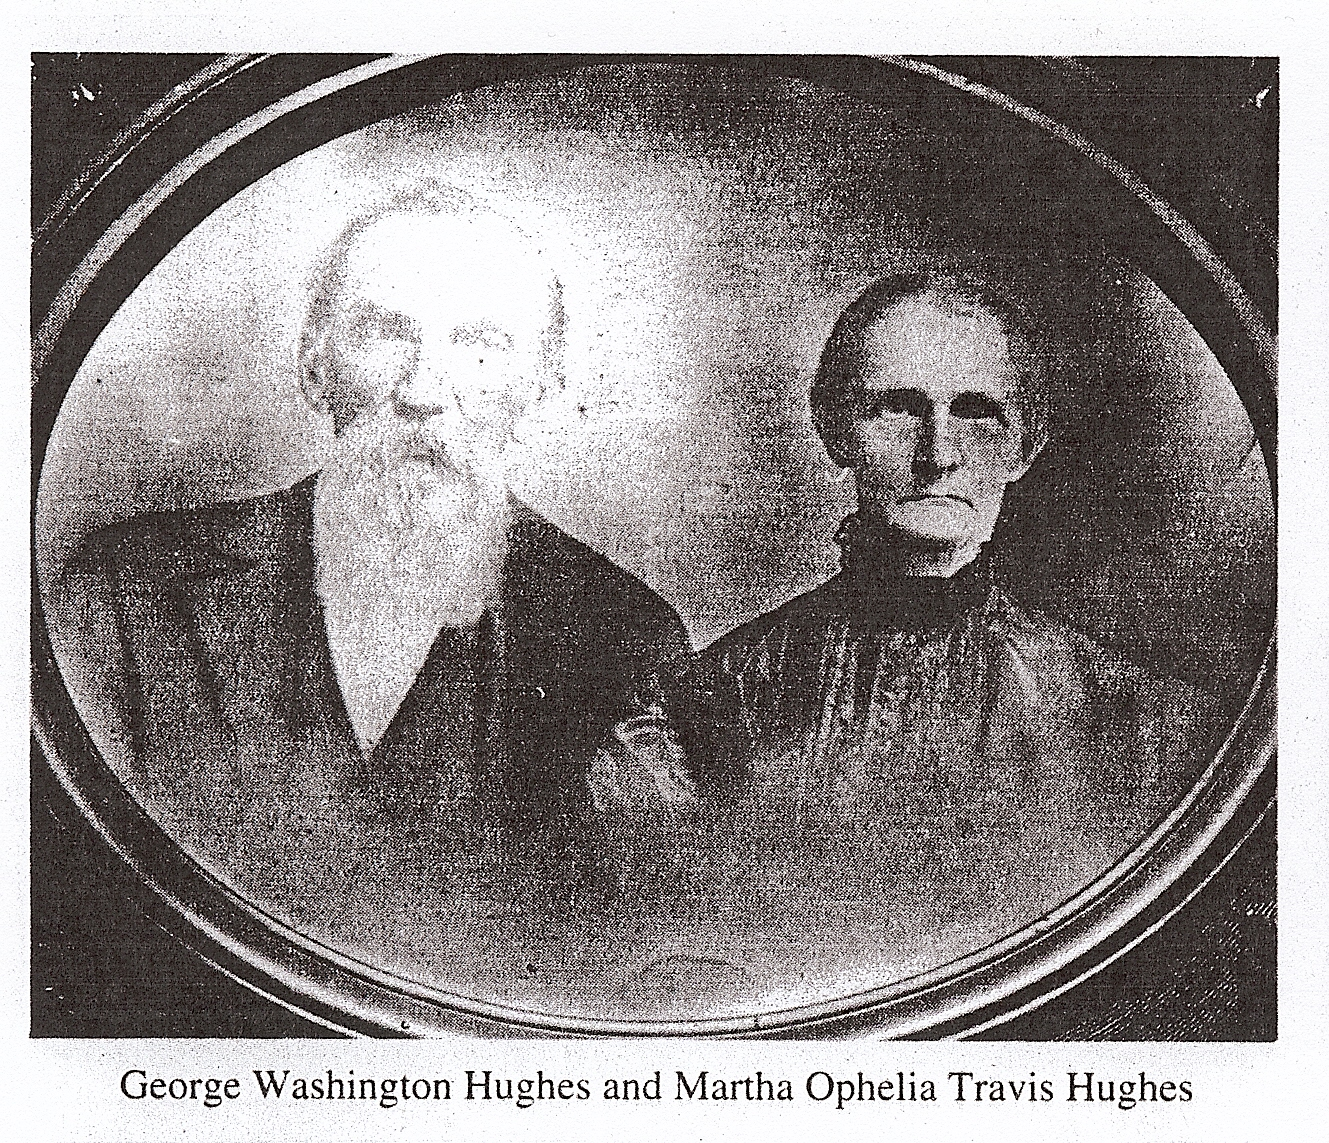 George Washington Hughes